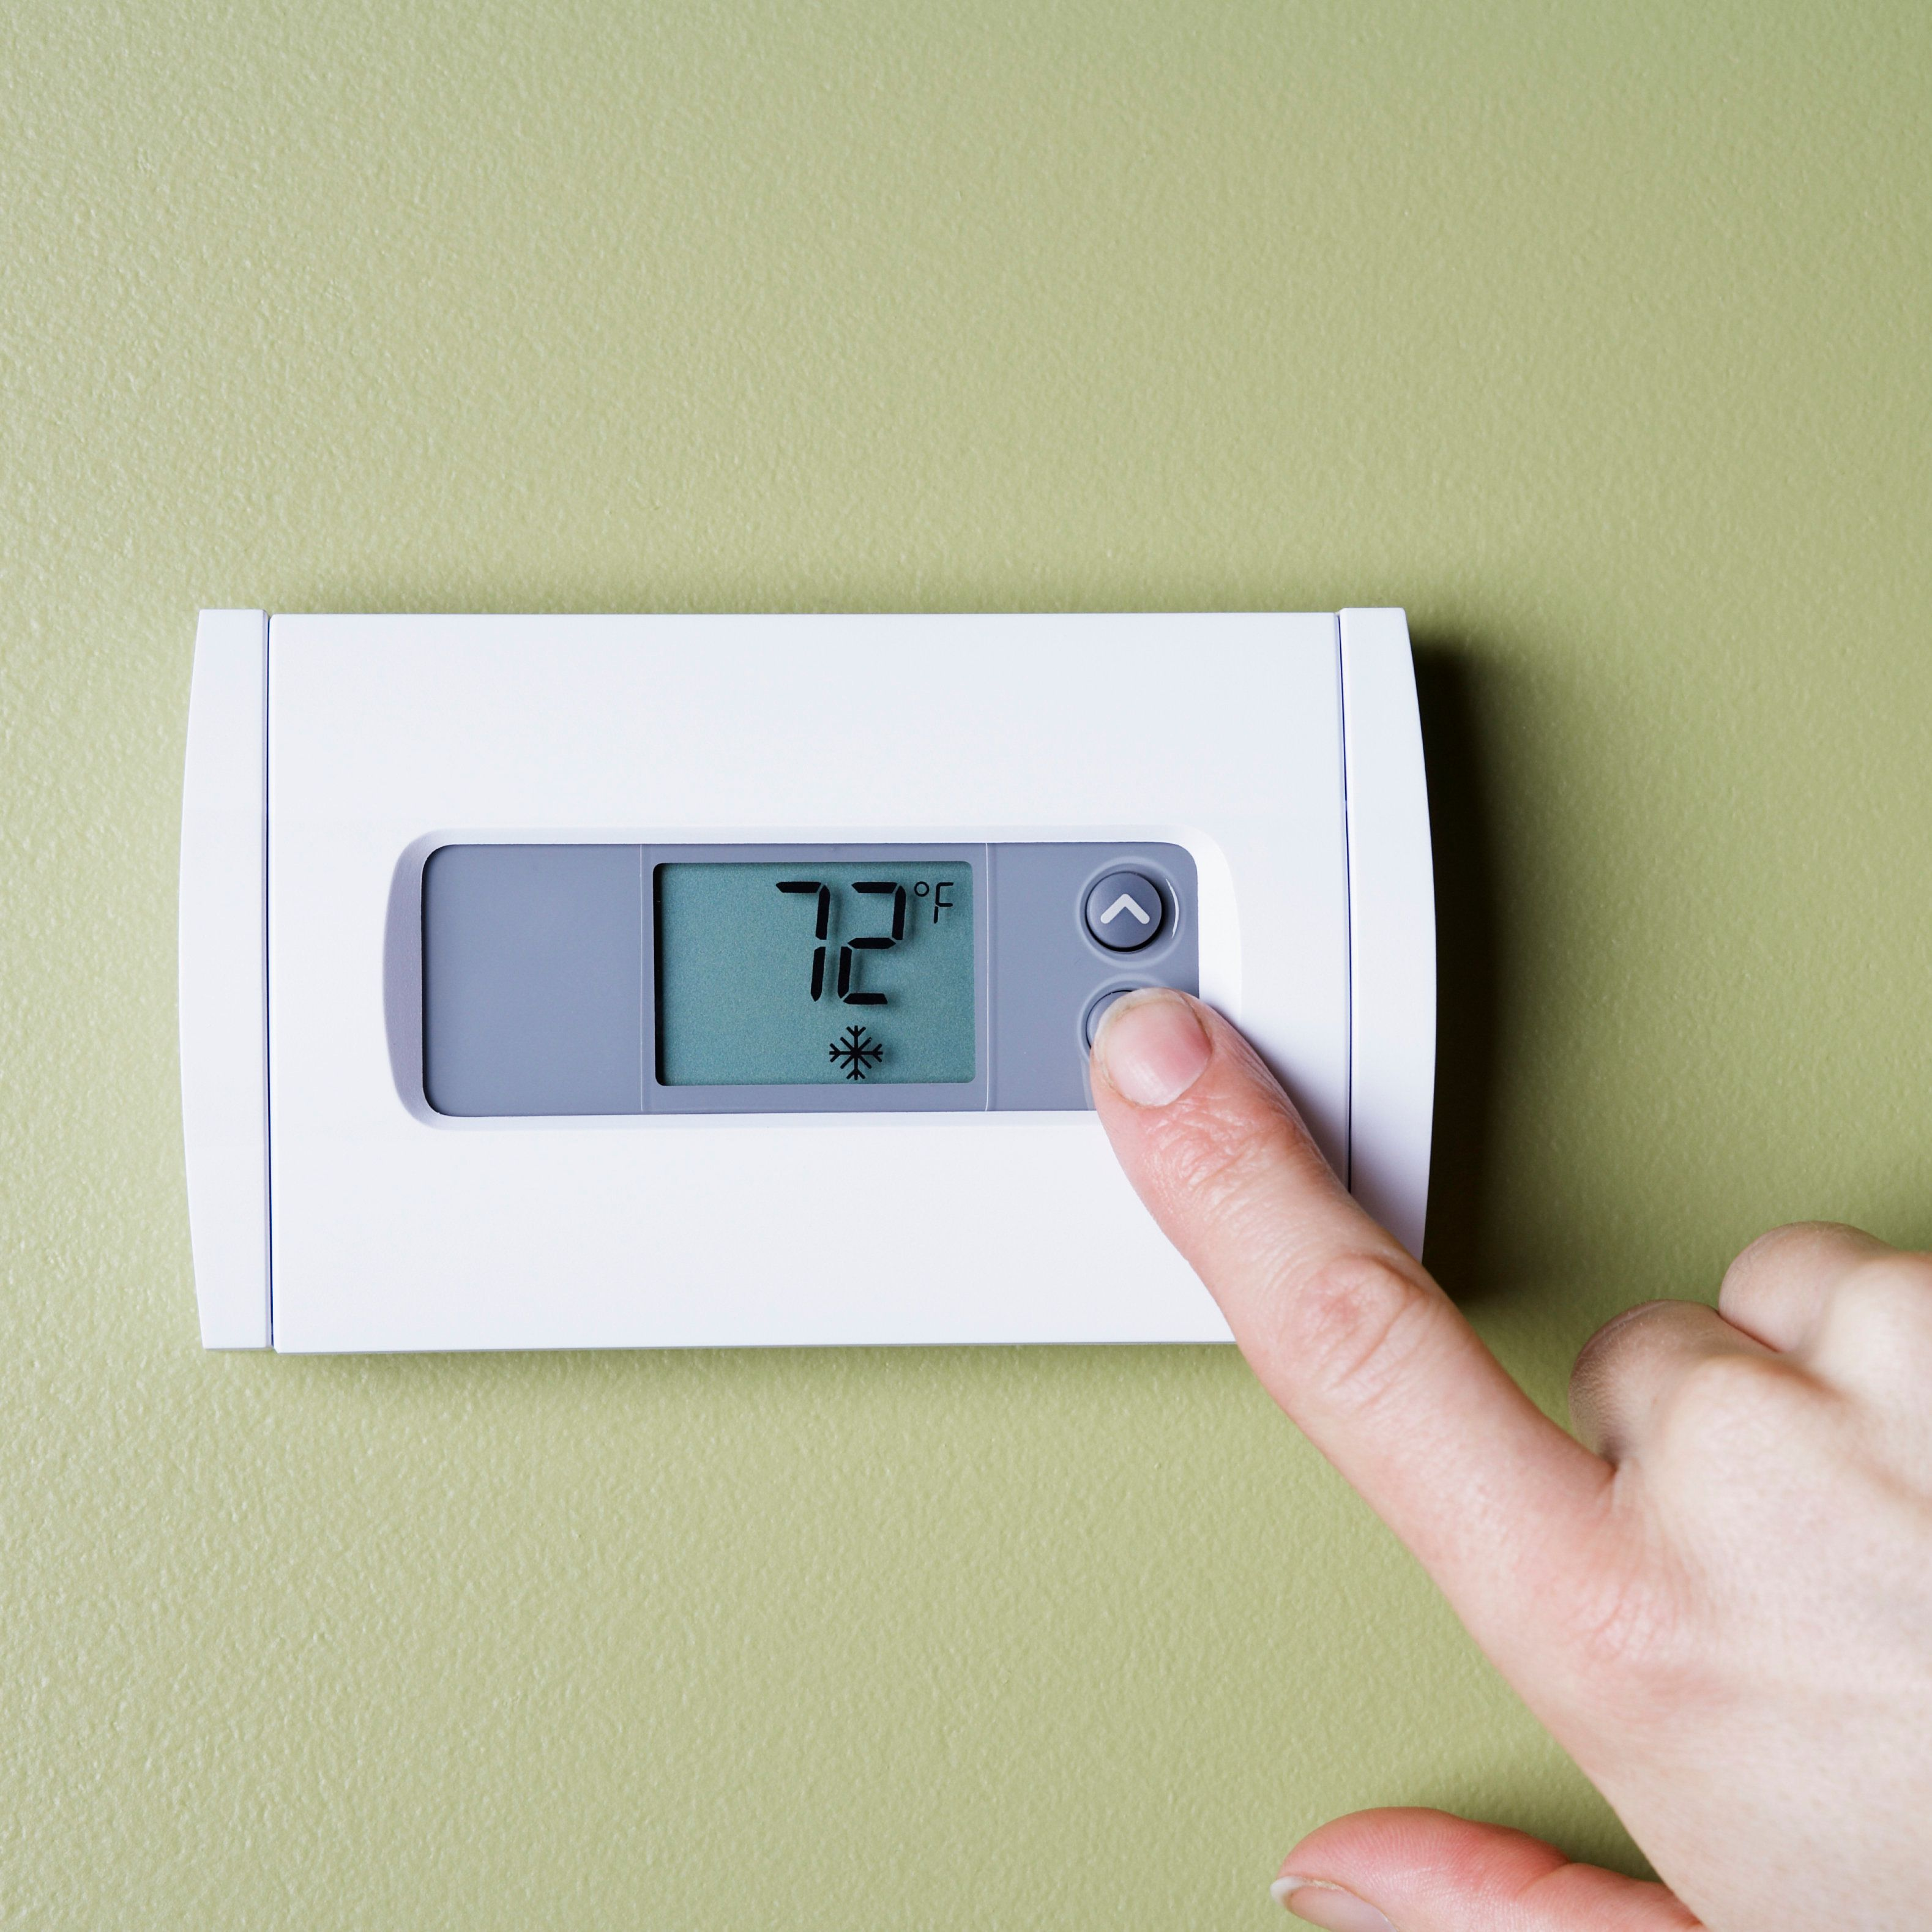 17 ways to keep your home warm without blasting the heat huffpost